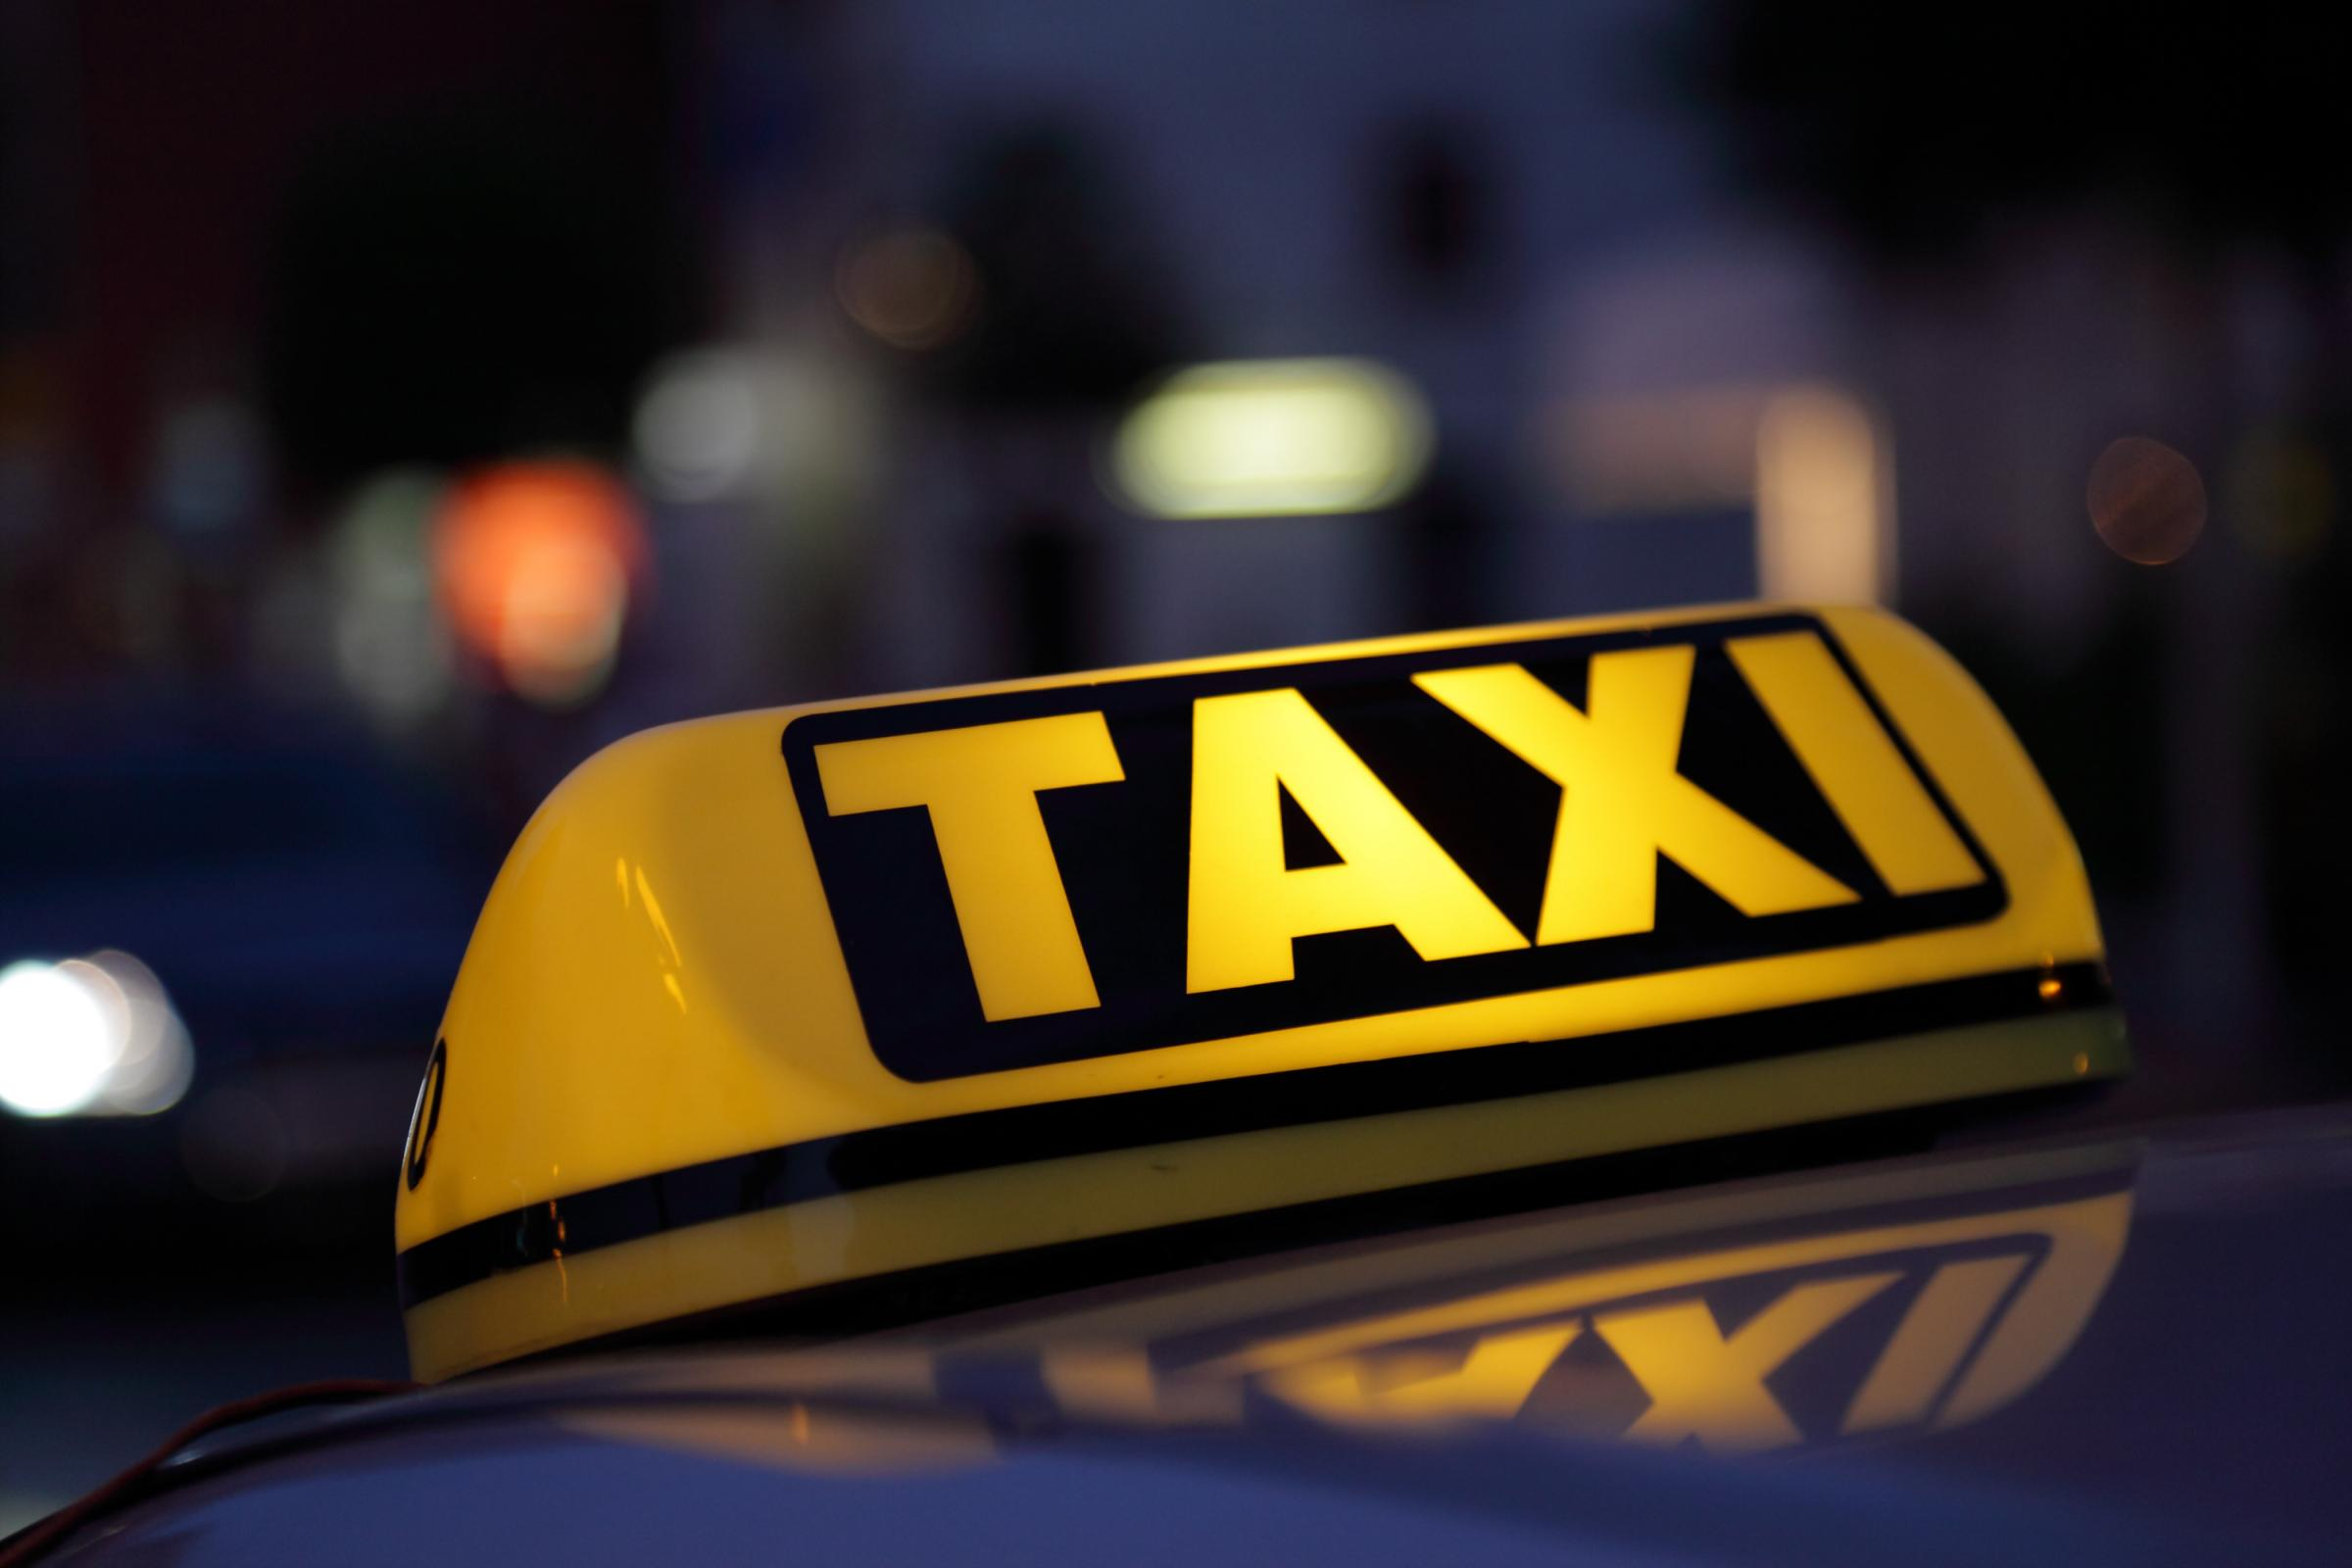 Taxi fares will rise in June